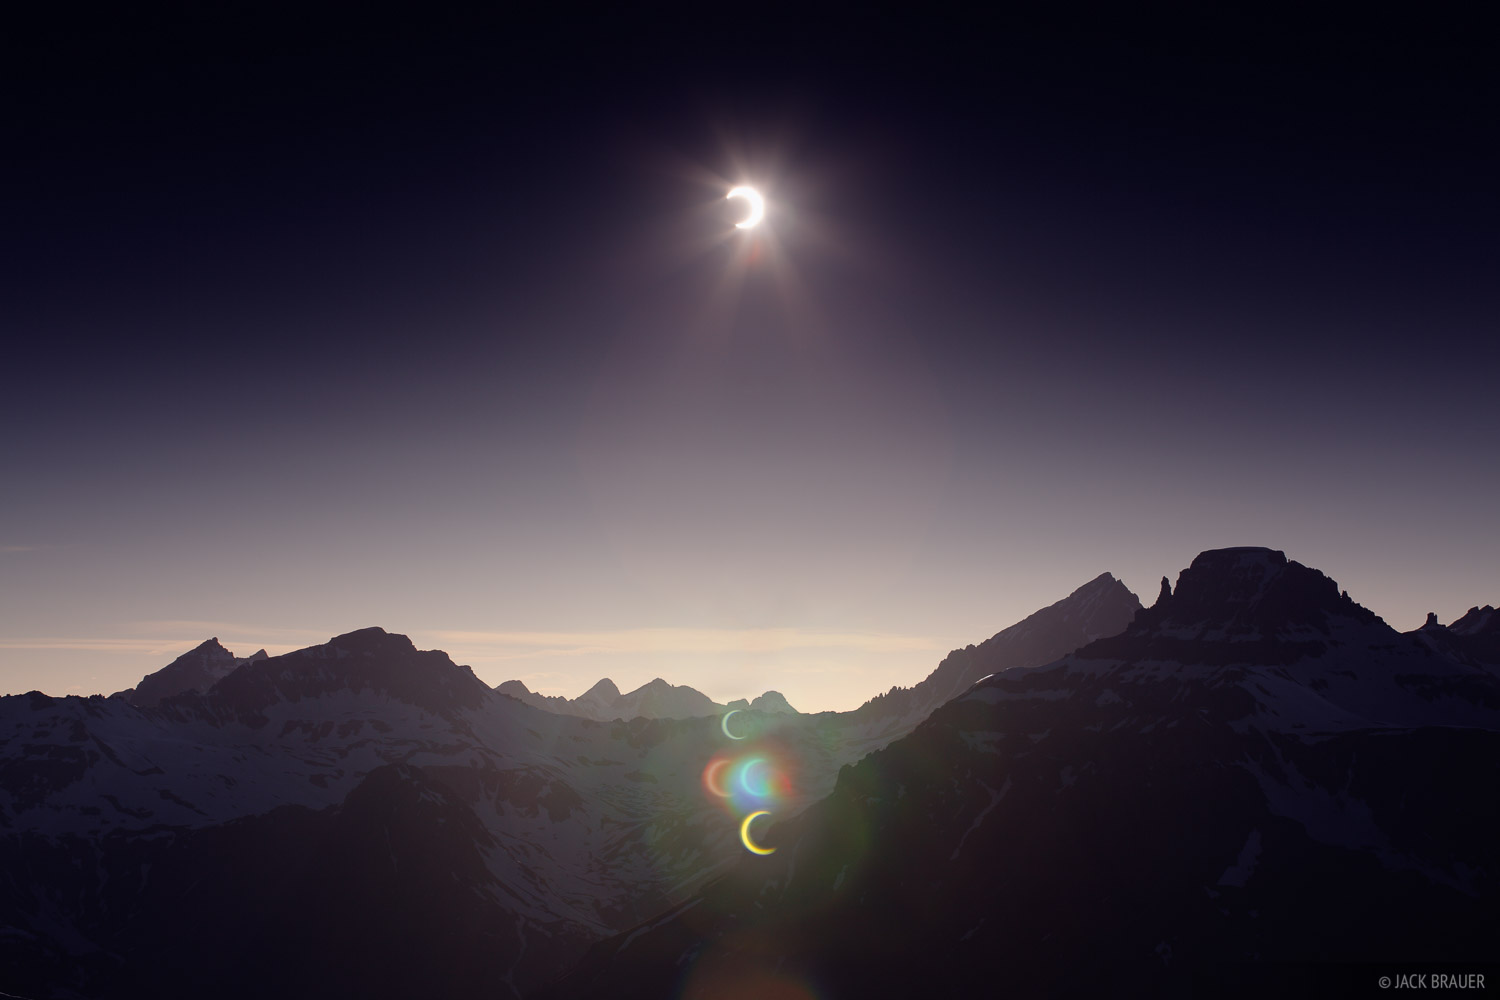 solar eclipse, Mt. Sneffels, San Juan Mountains, Colorado, photo